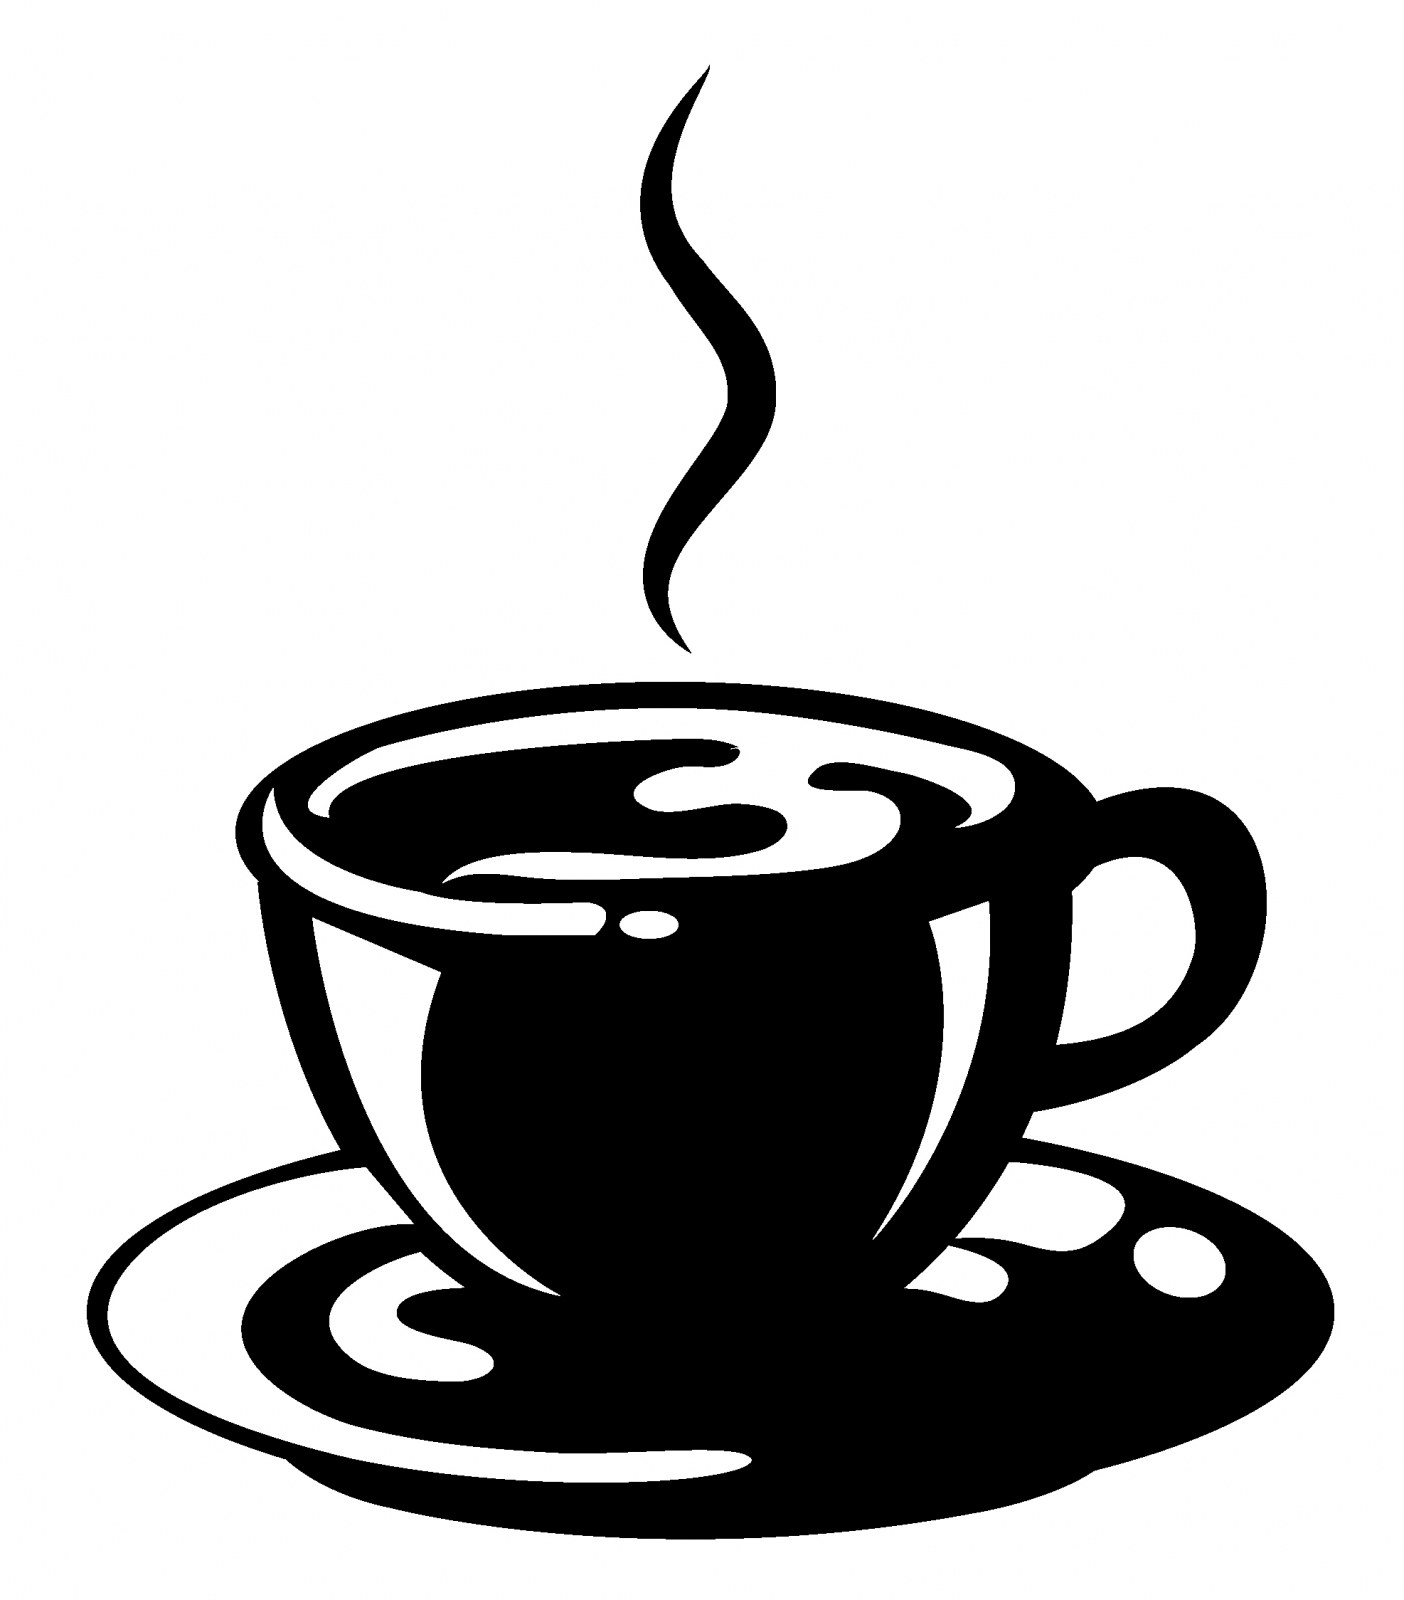 1404x1600 Coffee Cup Vector 3 An Images Hub